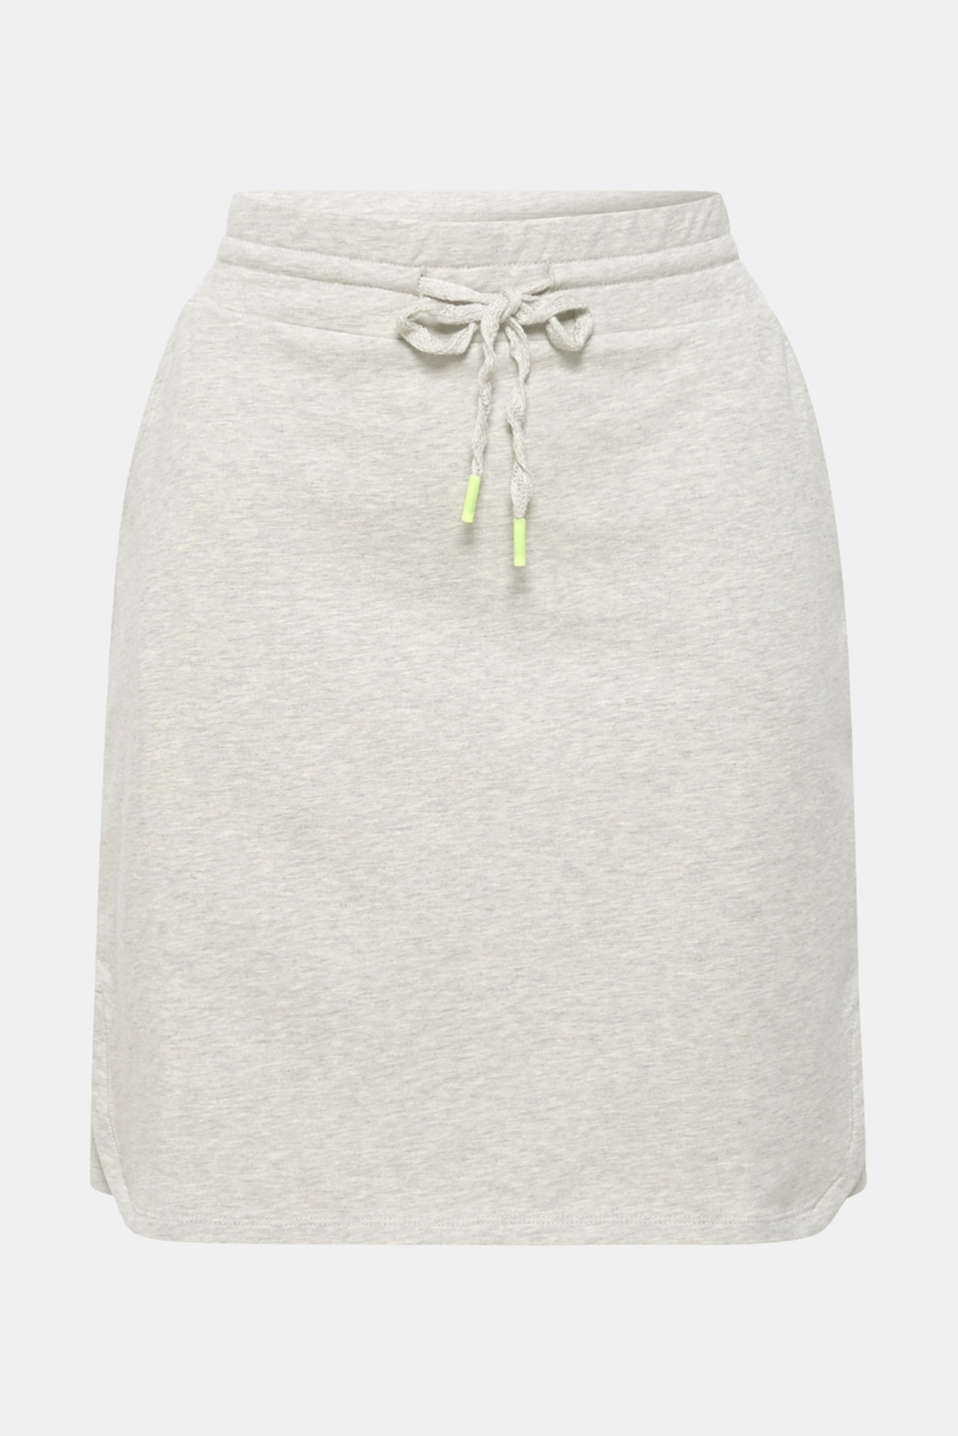 Sweatshirt fabric skirt with stretch and neon details, MEDIUM GREY, detail image number 6